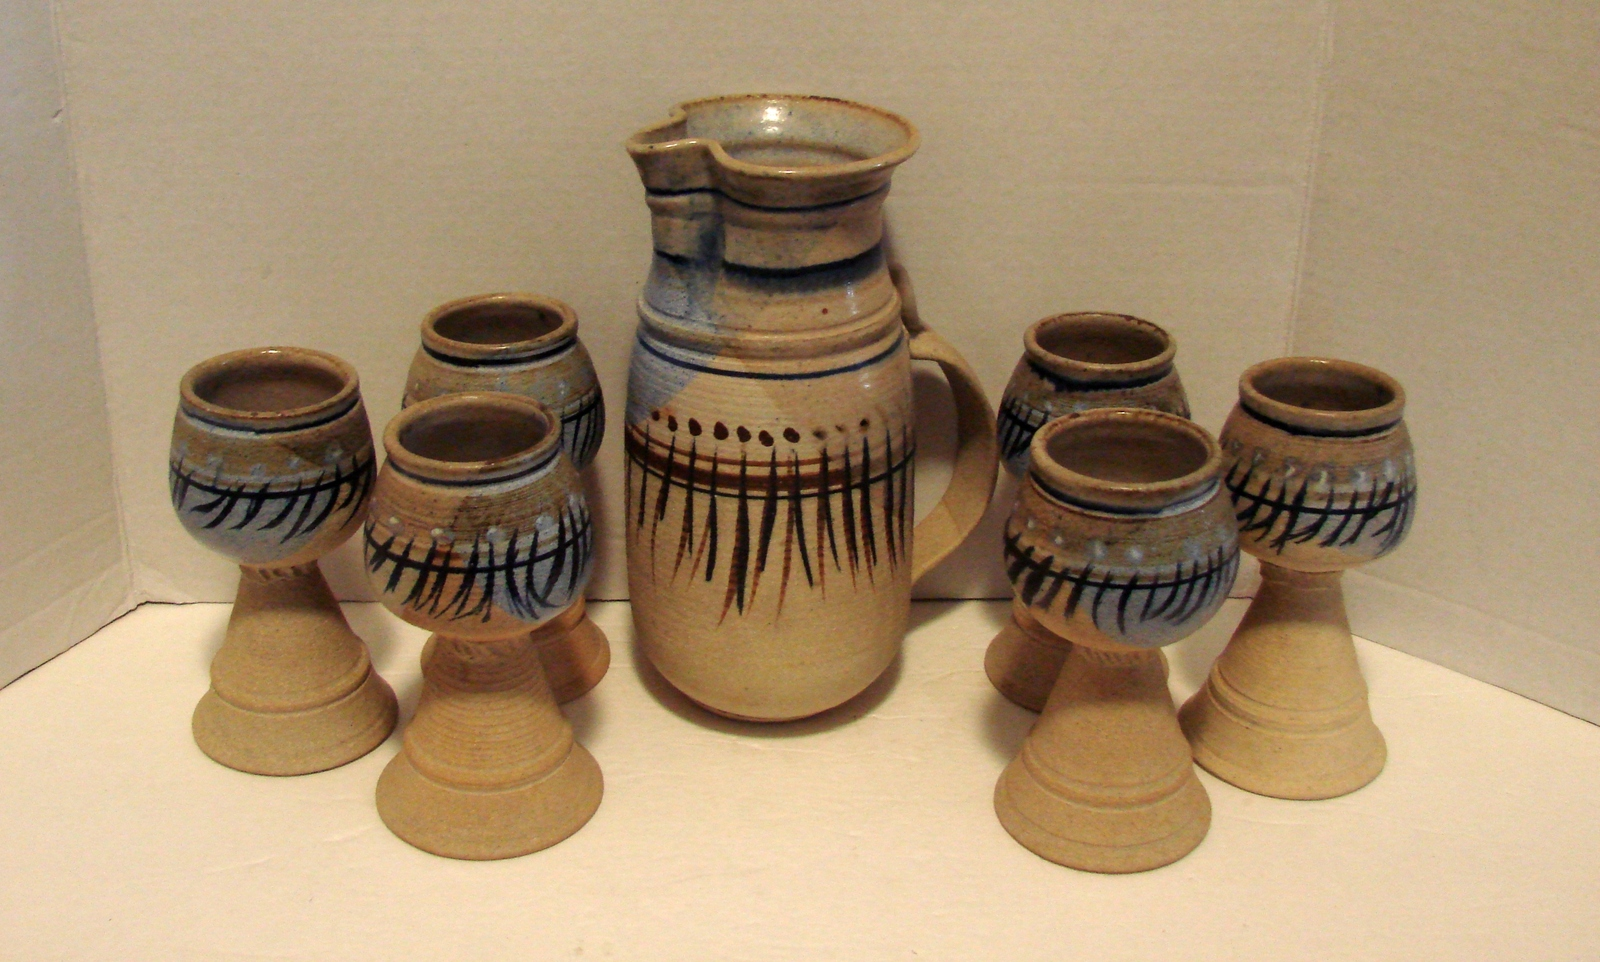 Native American Themed Stoneware Pitcher - Goblets Stunning! - $140.00